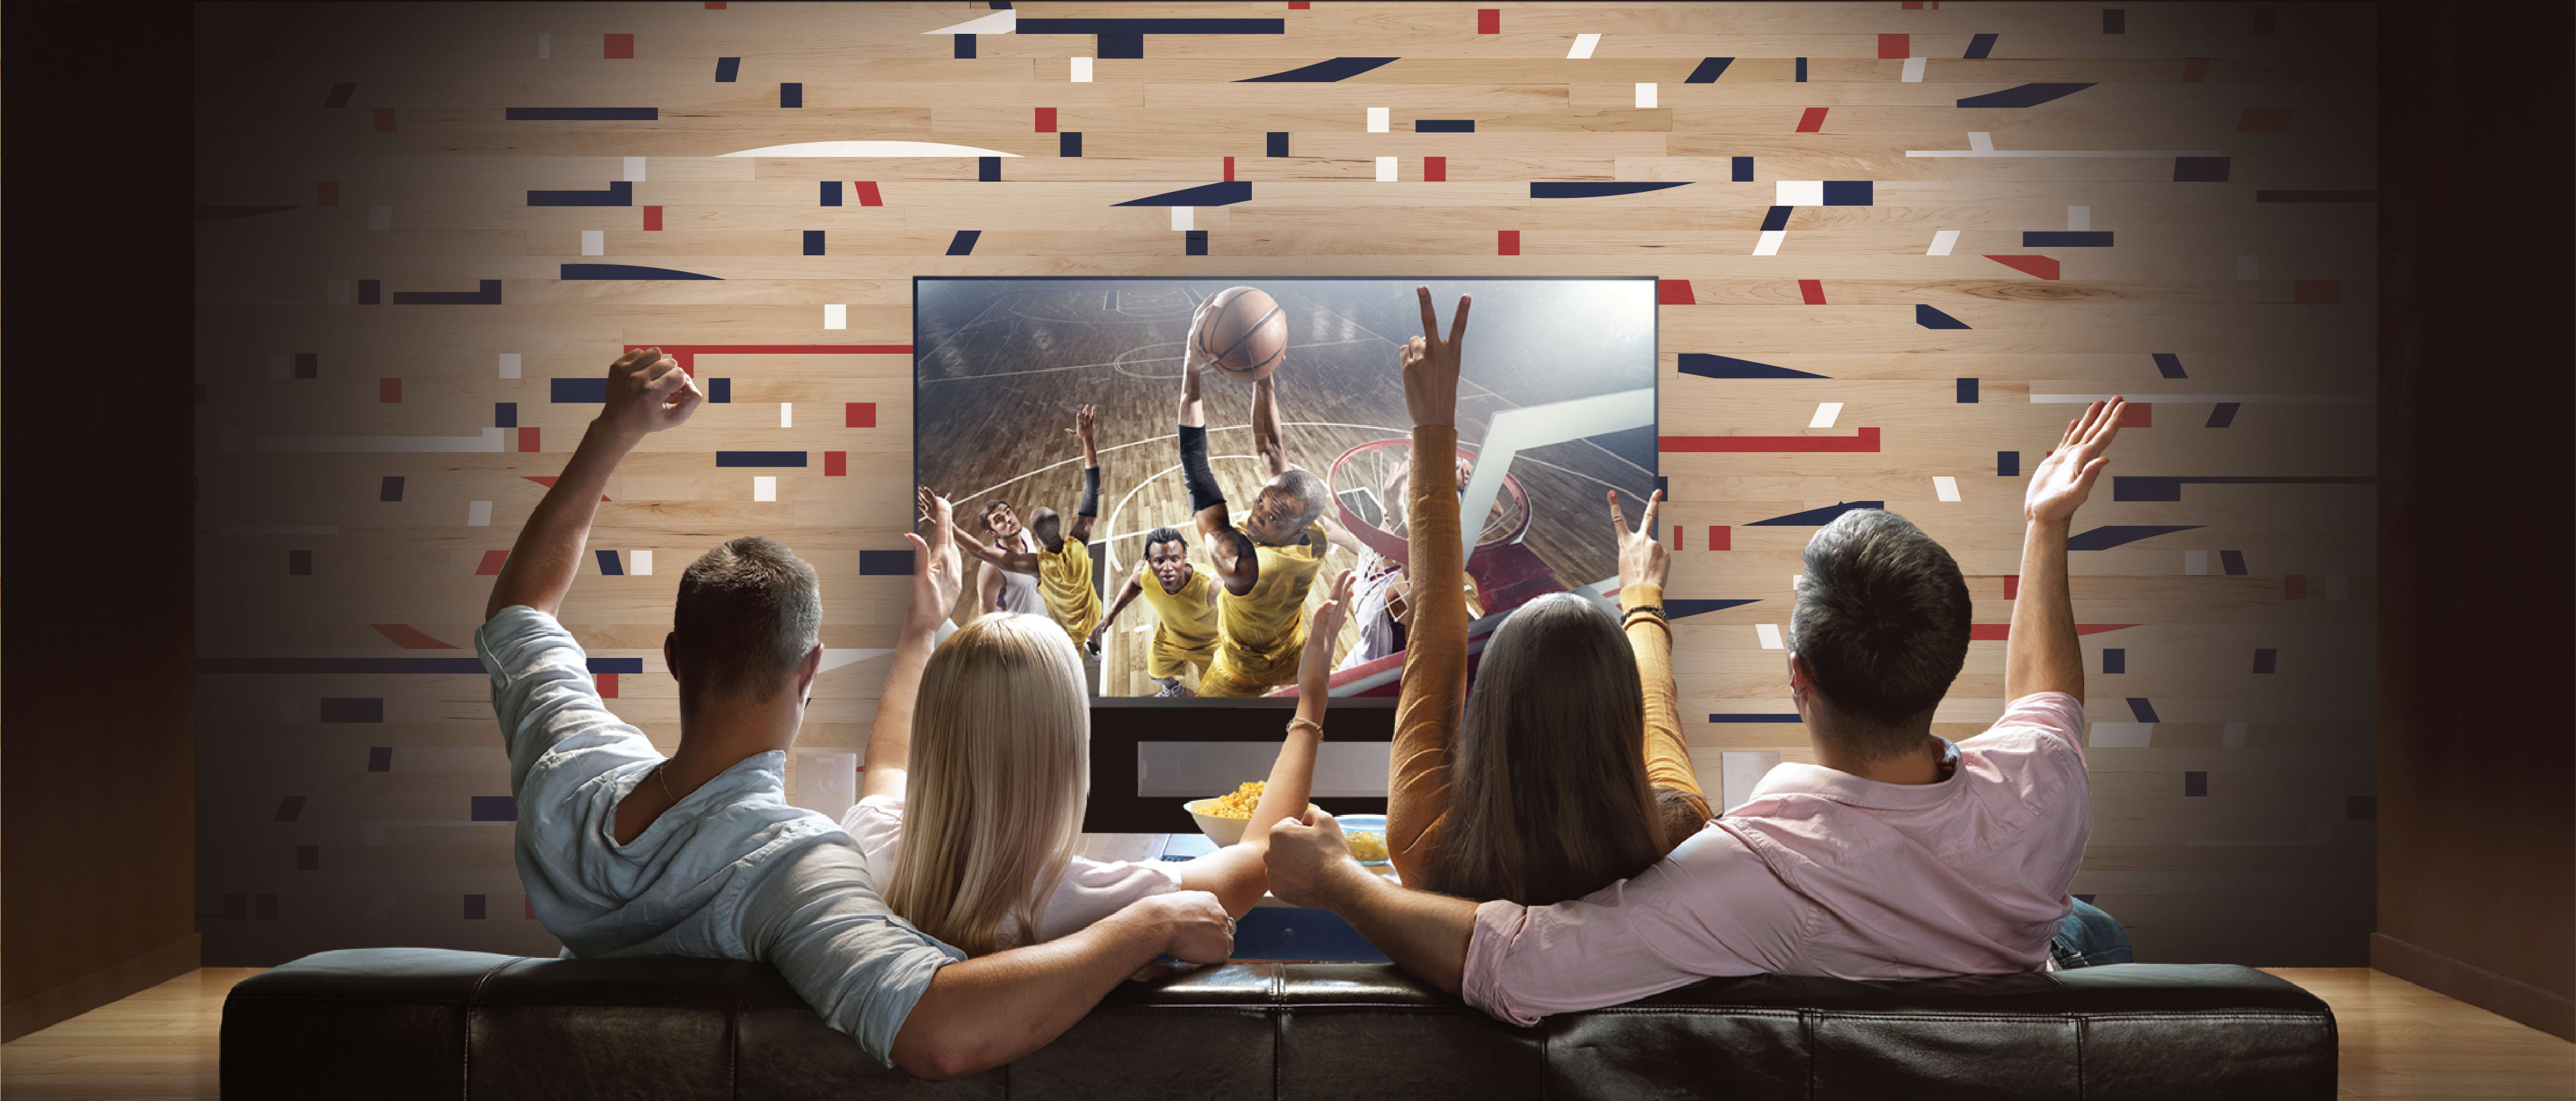 4 fans sitting on a couch watching a basketball game on TV in front of a Stikwood Fanwall peel and stick custom sports wall.